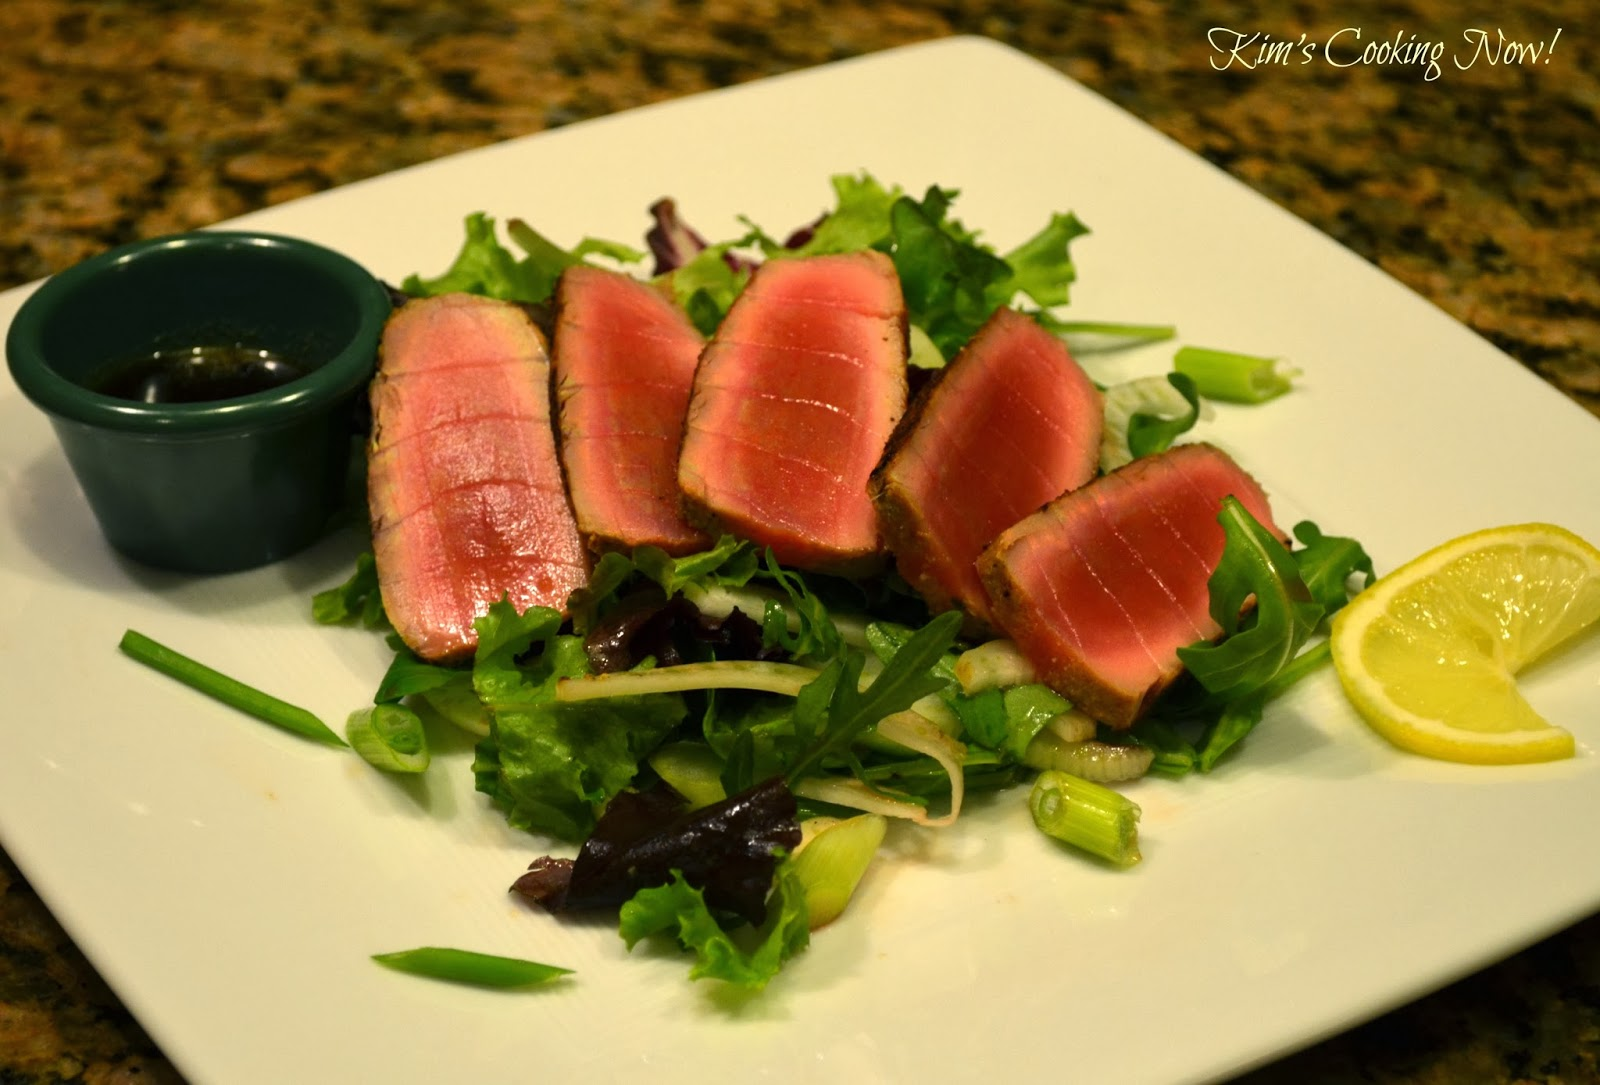 Now!: Seared Ahi Tuna with Wasabi Ponzu Dipping Sauce and Fennel Salad ...